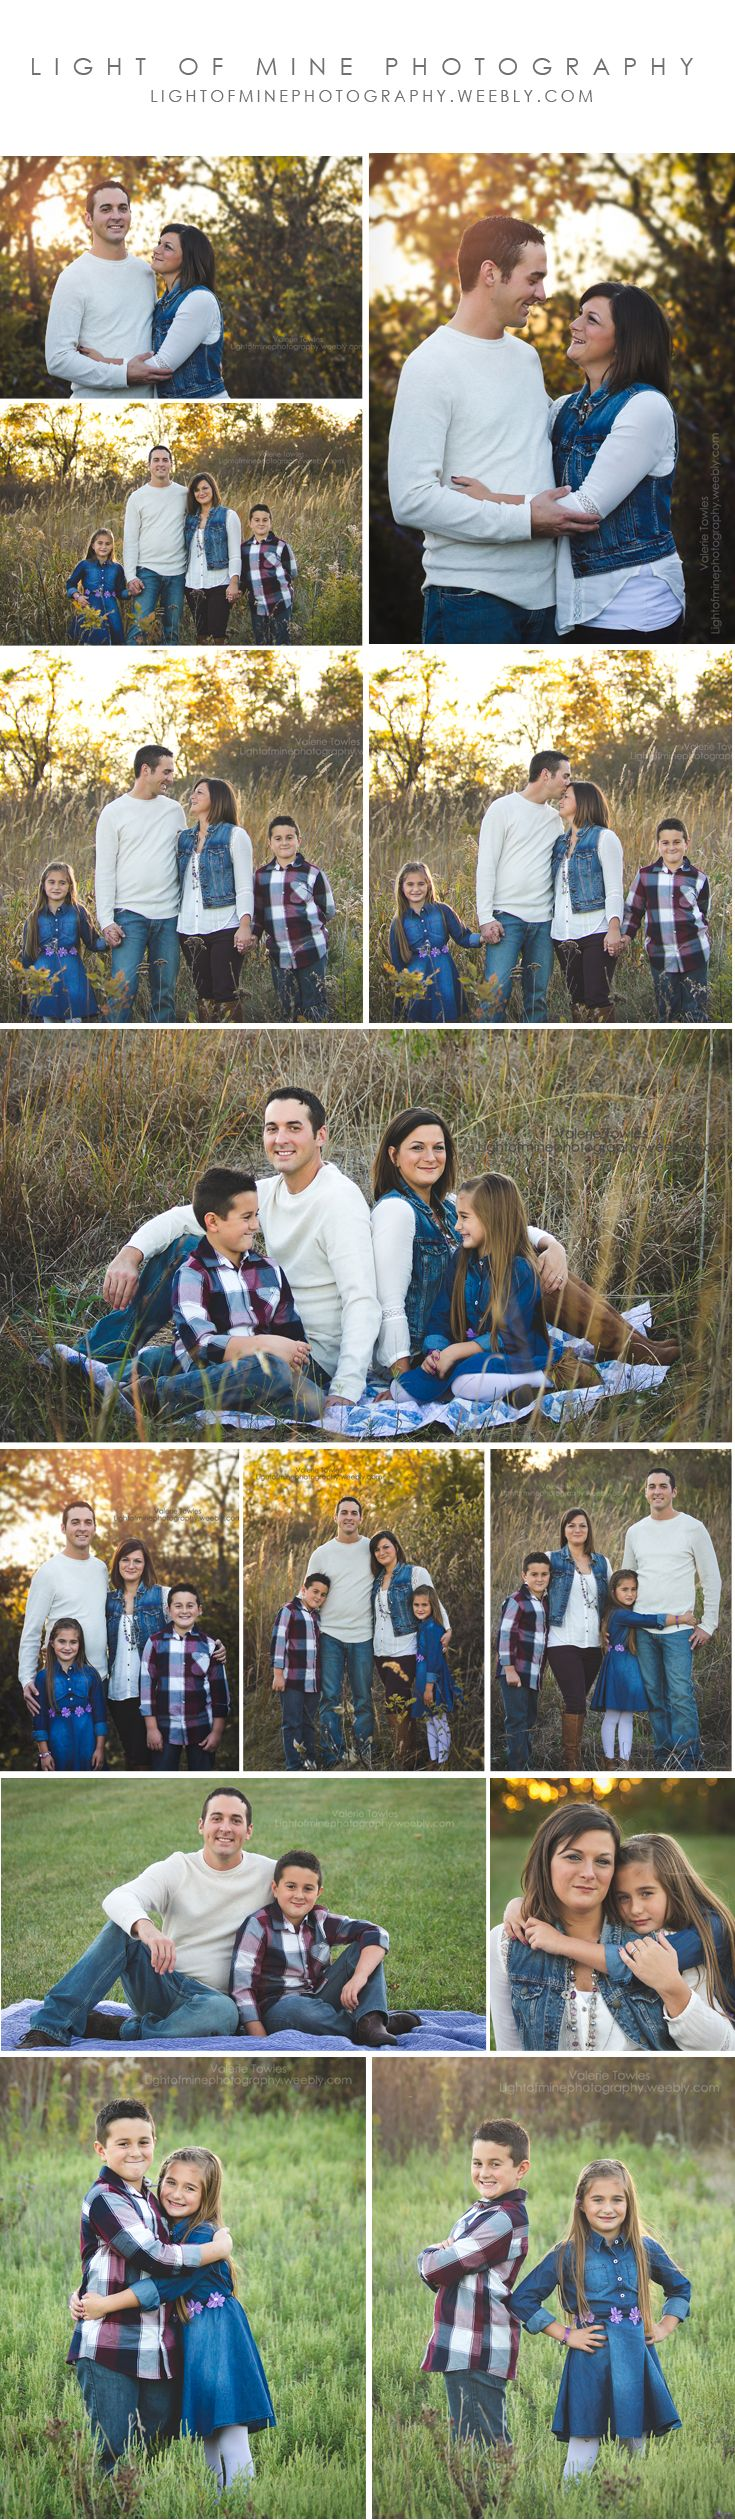 Family Portraits, Family of 4 photo session, Posing for families. Lightofminephotography.weebly.com